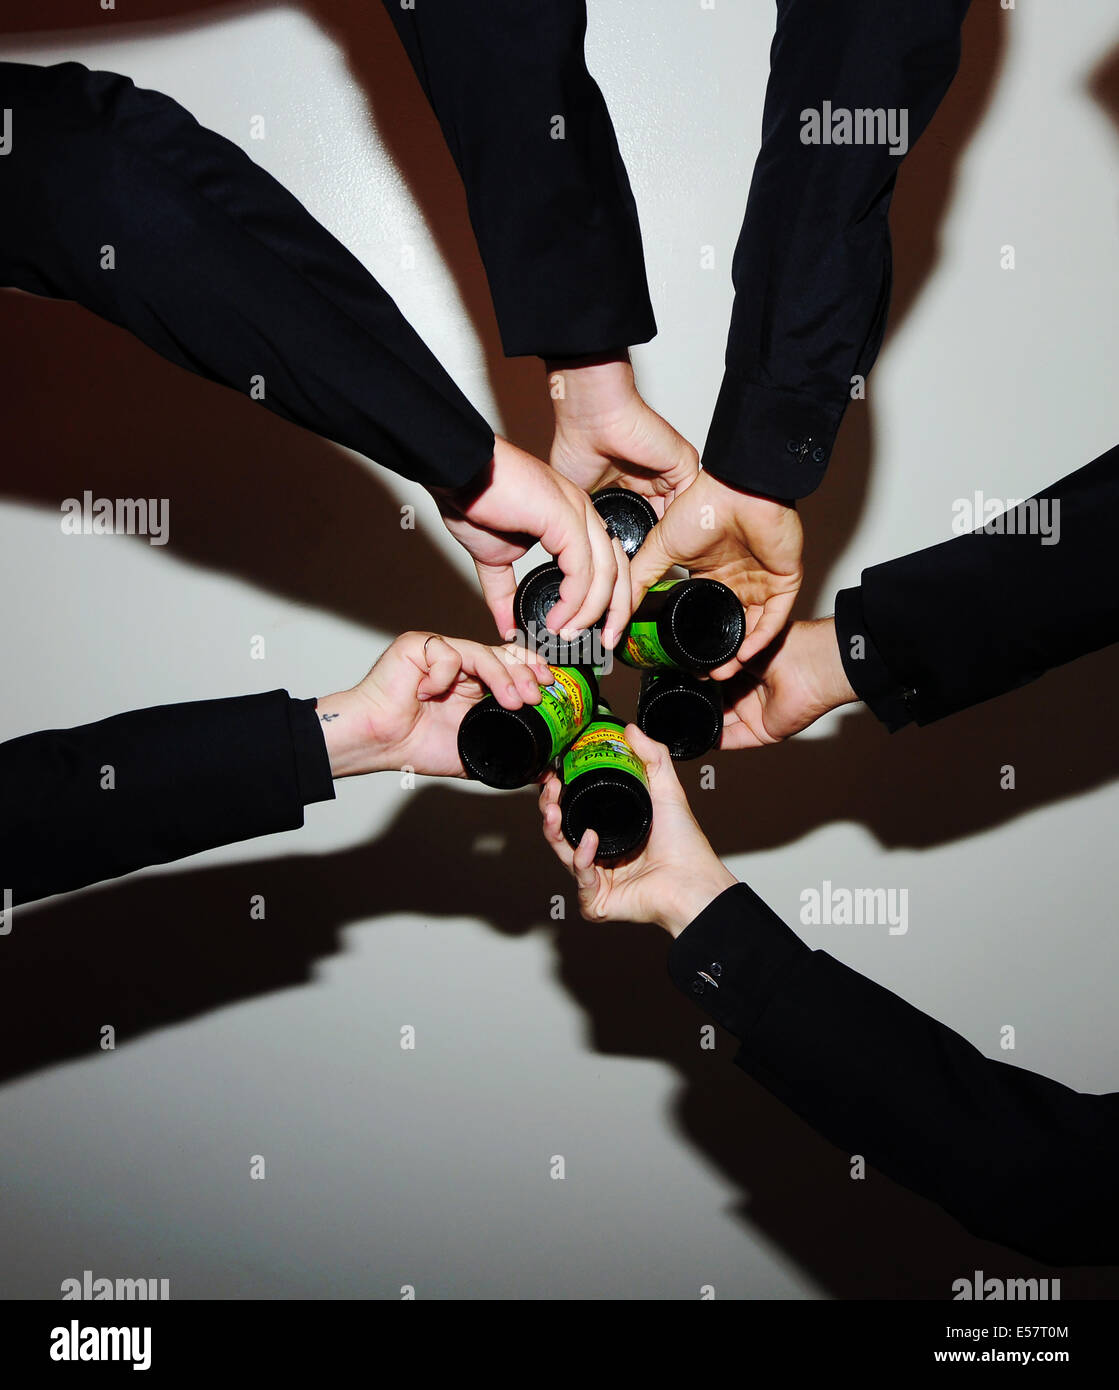 A group of men in suits toasting. - Stock Image